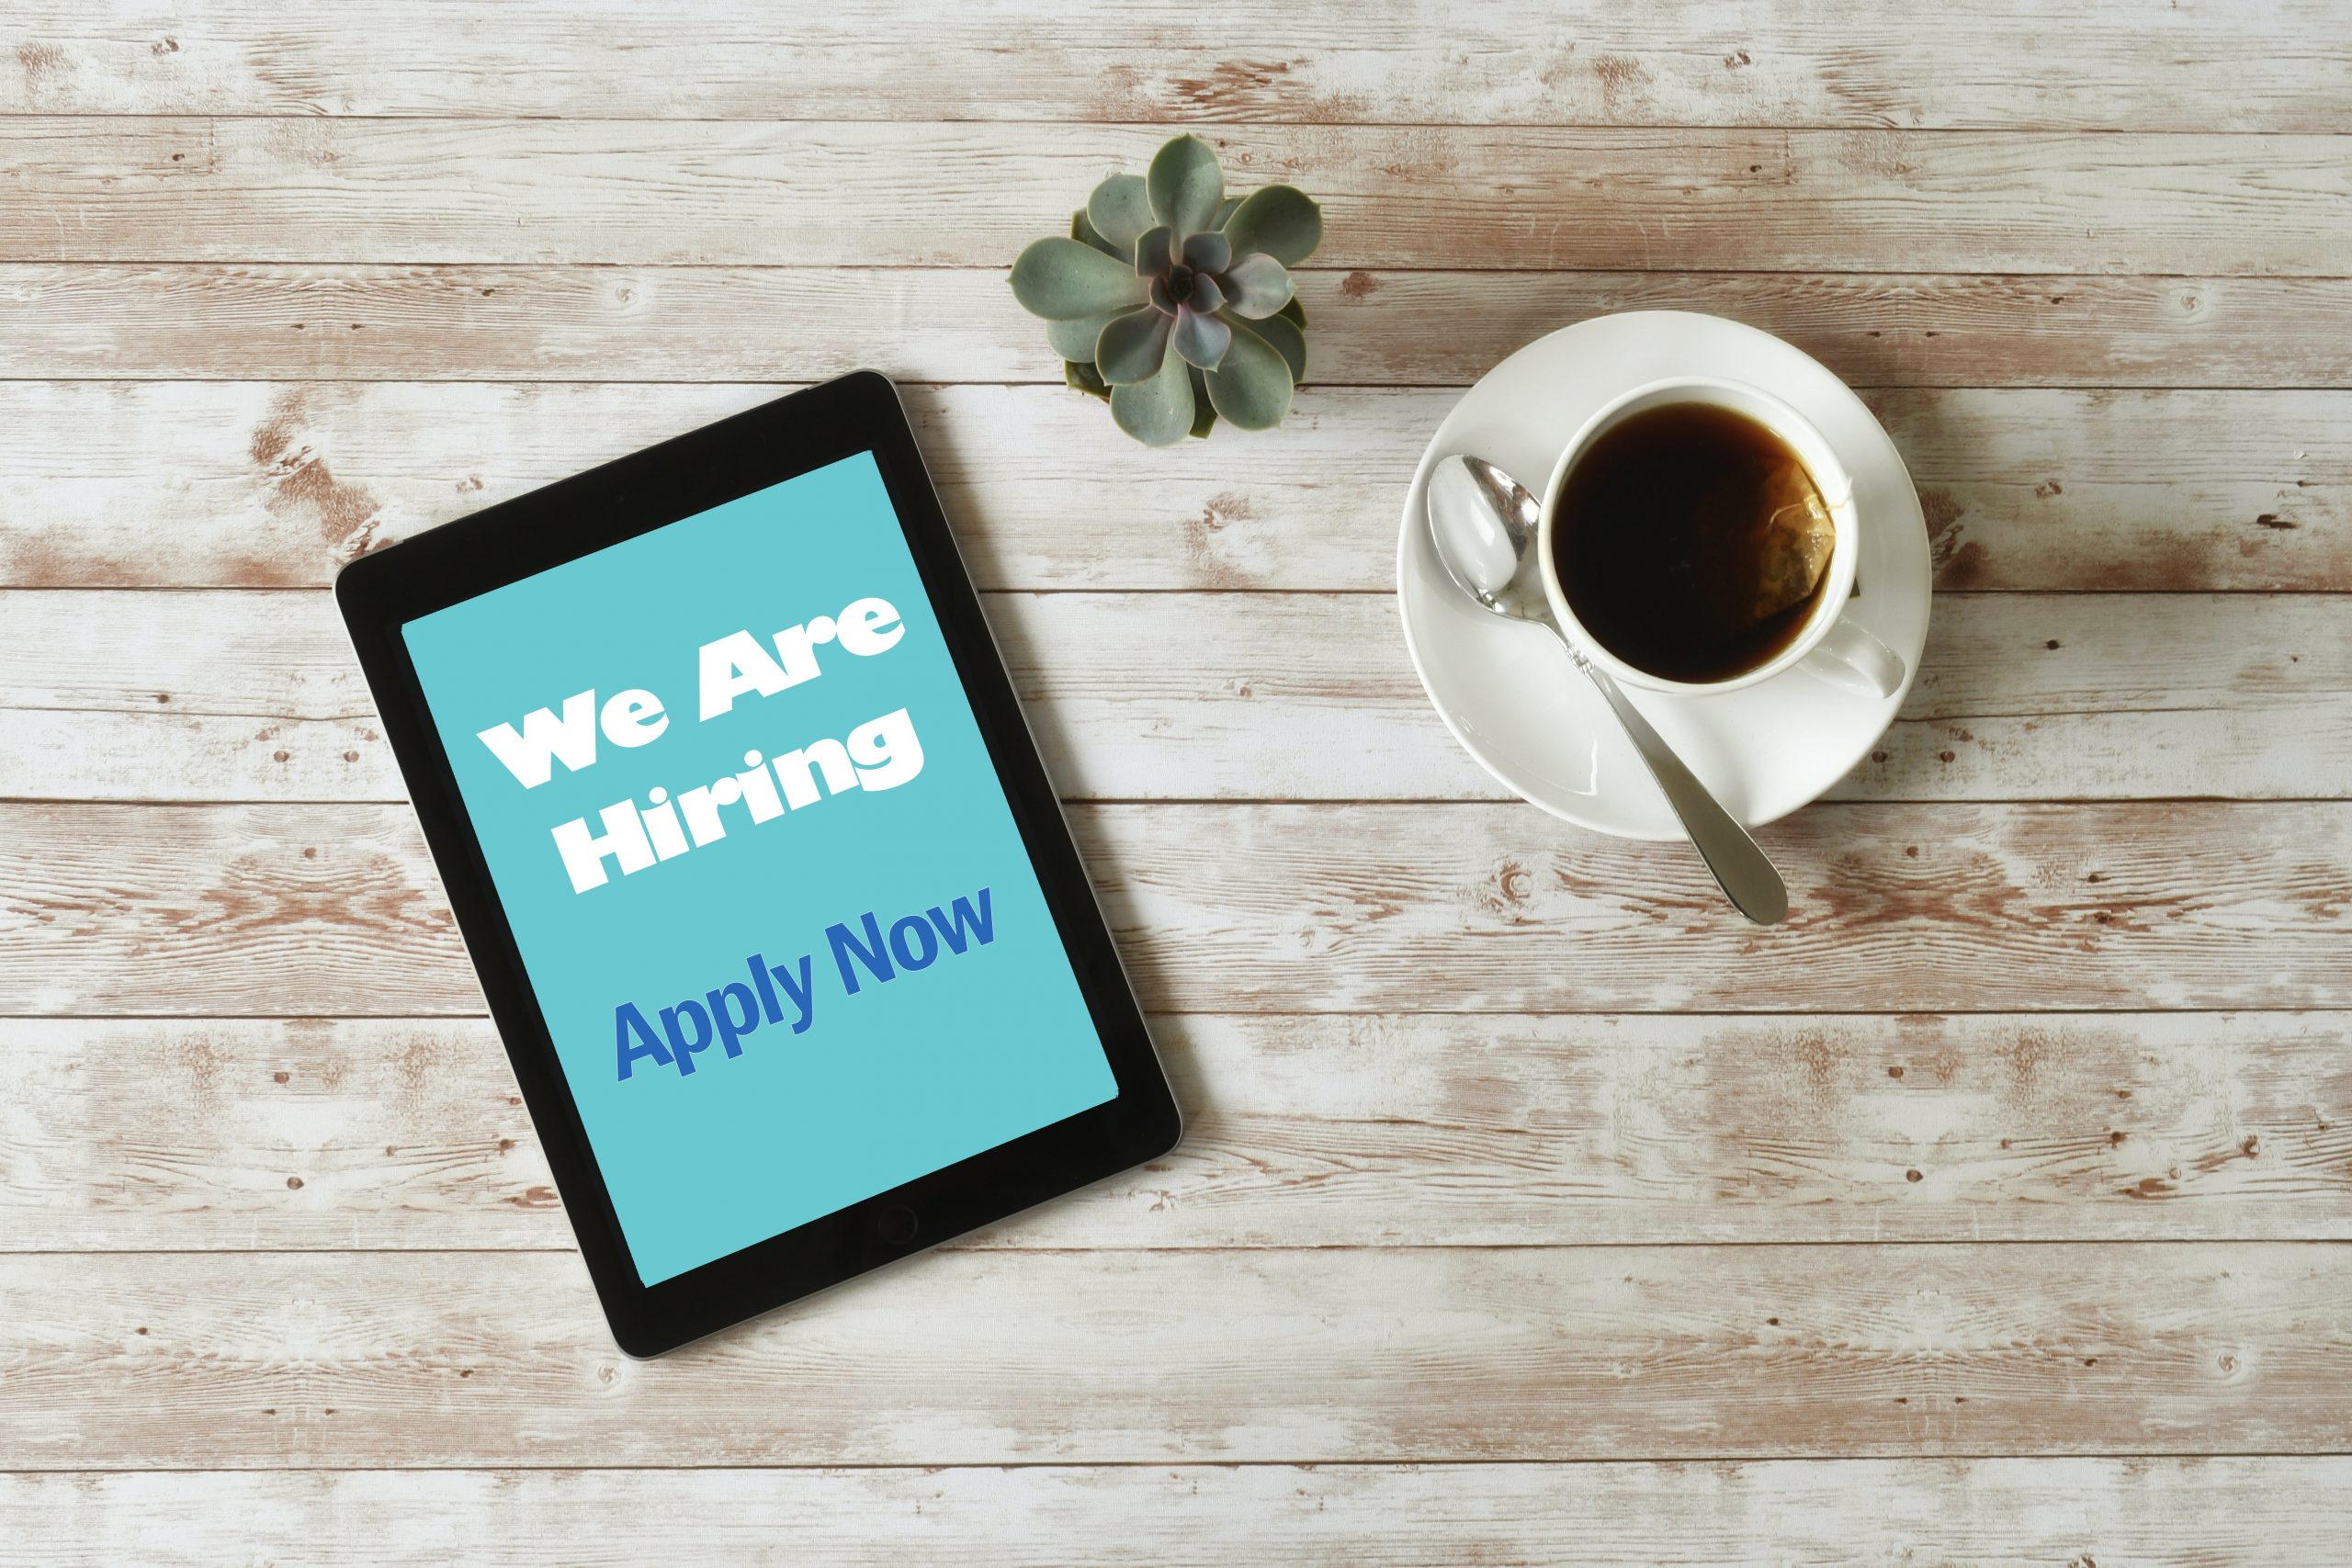 online-job-search-we-are-hiring-apply-now-on-table-HMHYM3F